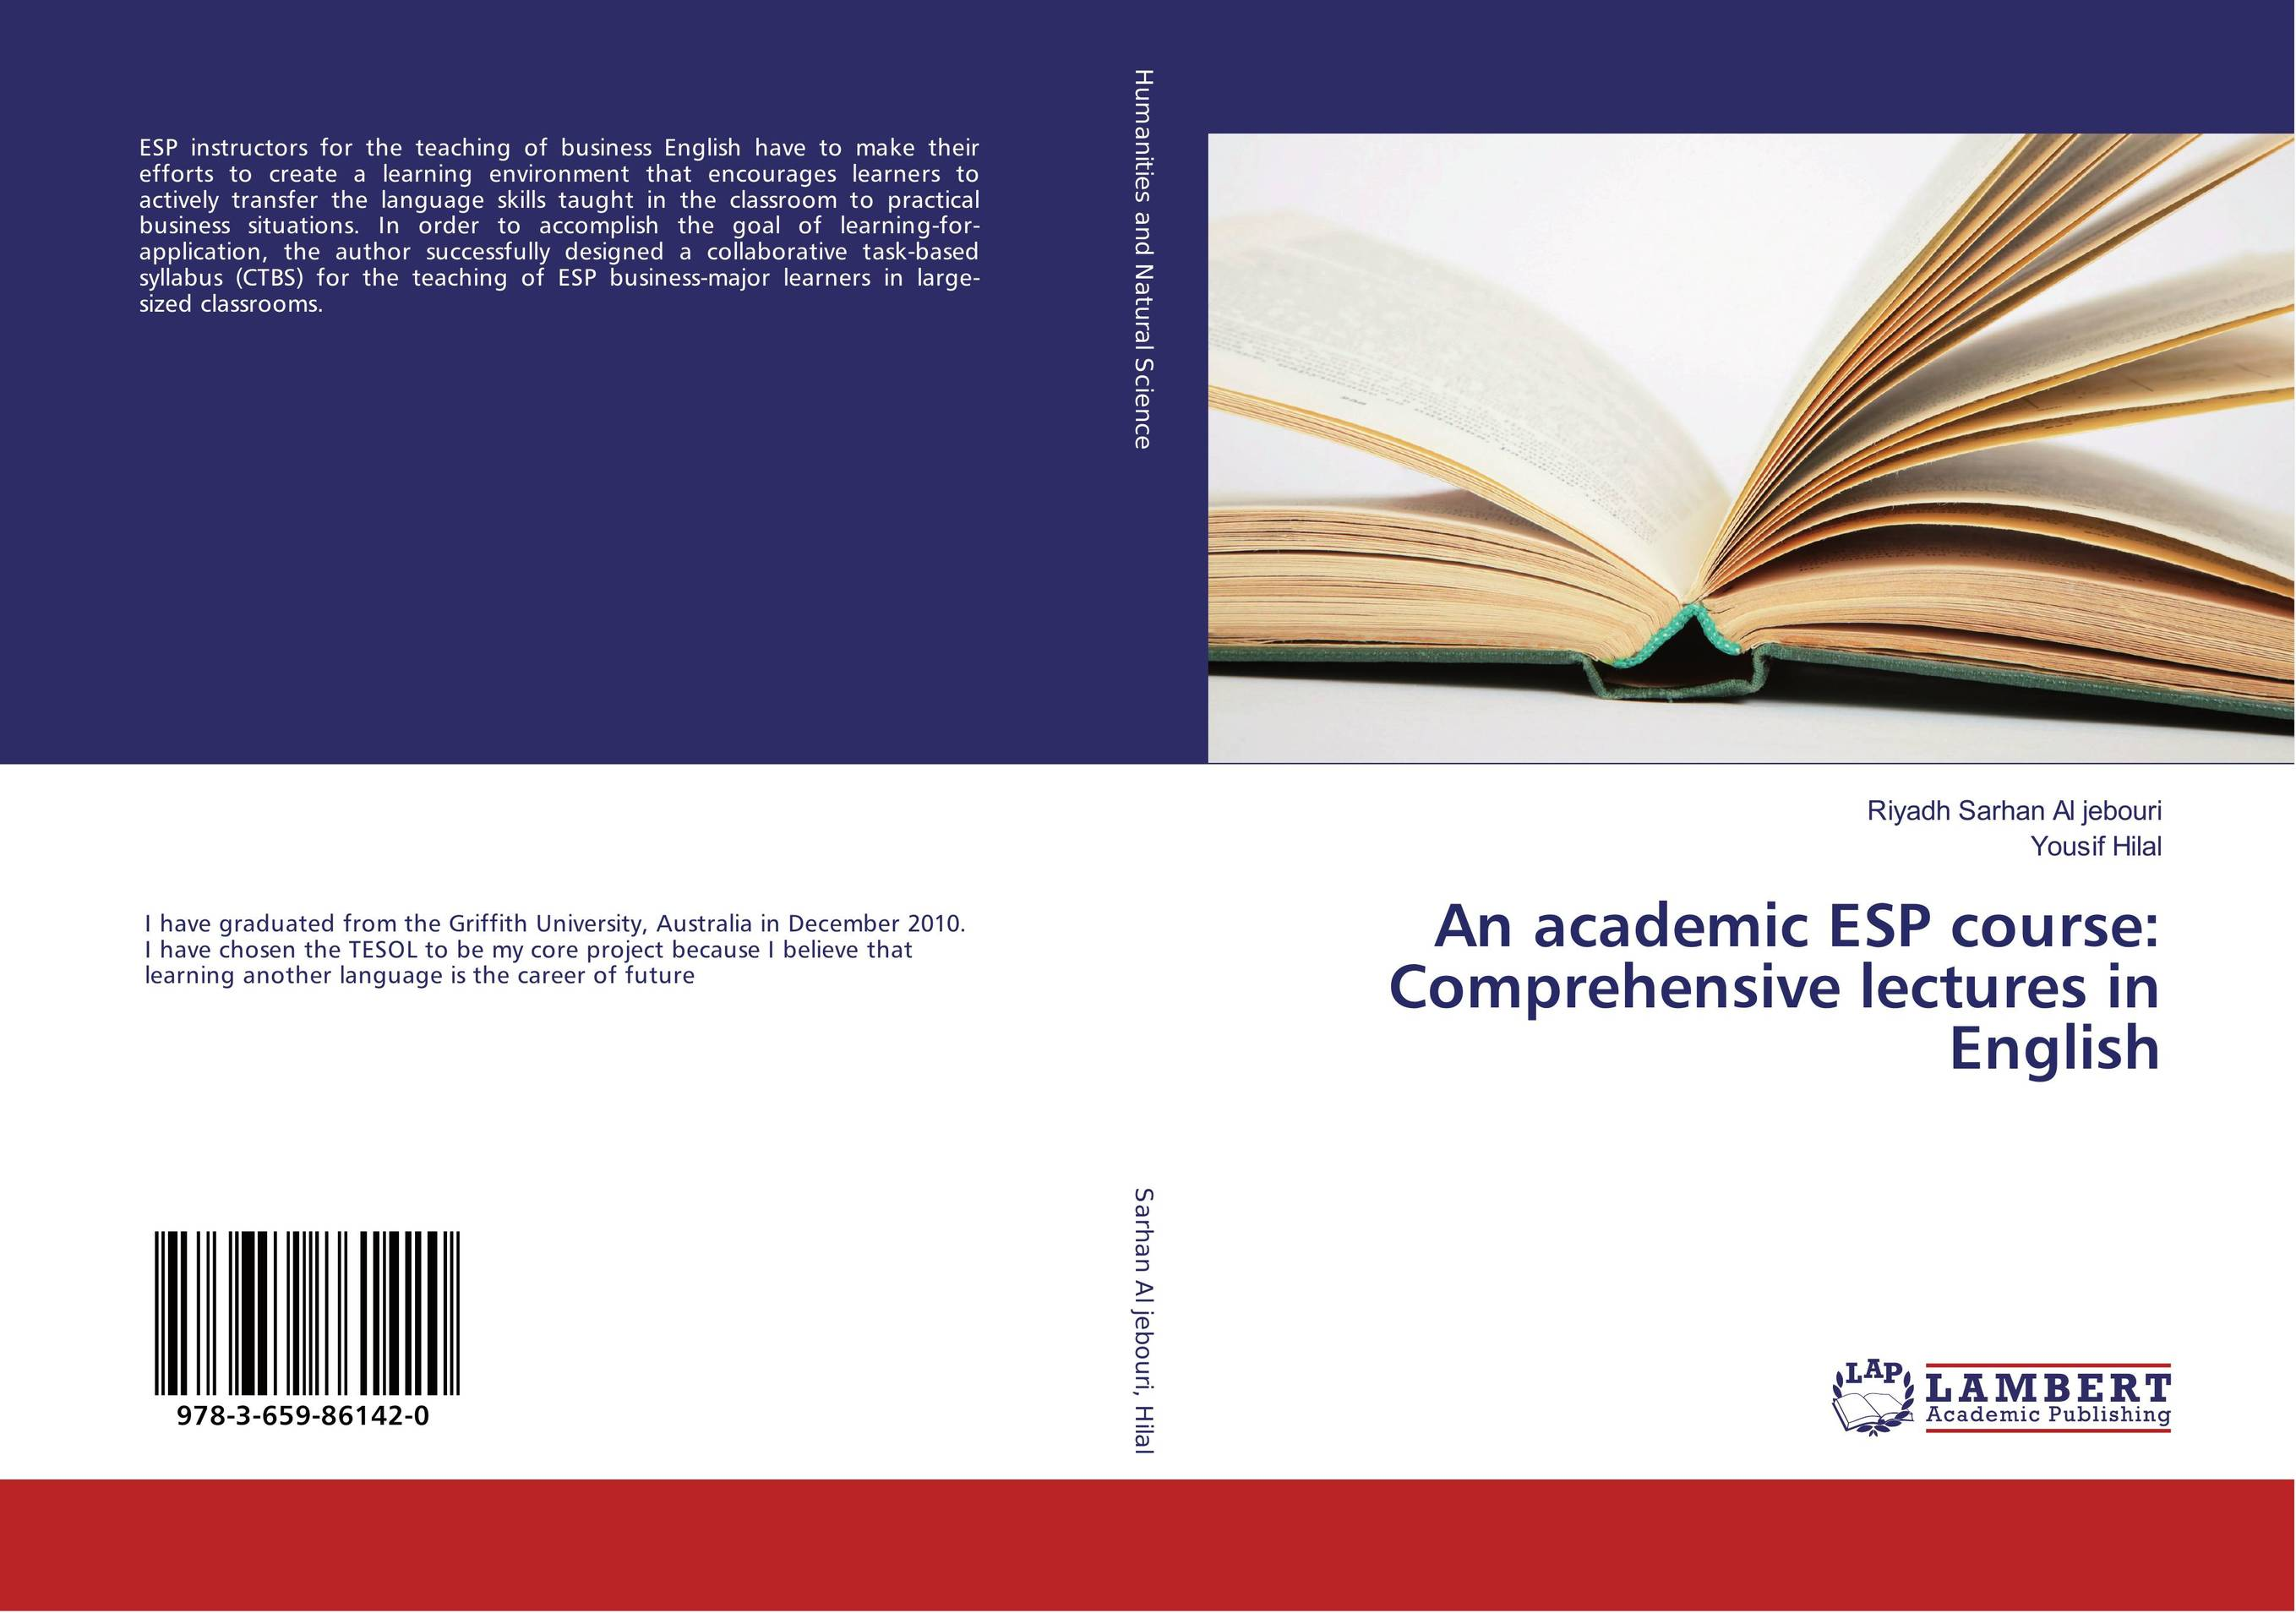 An academic ESP course: Comprehensive lectures in English freedman statistics 4e instructors manual